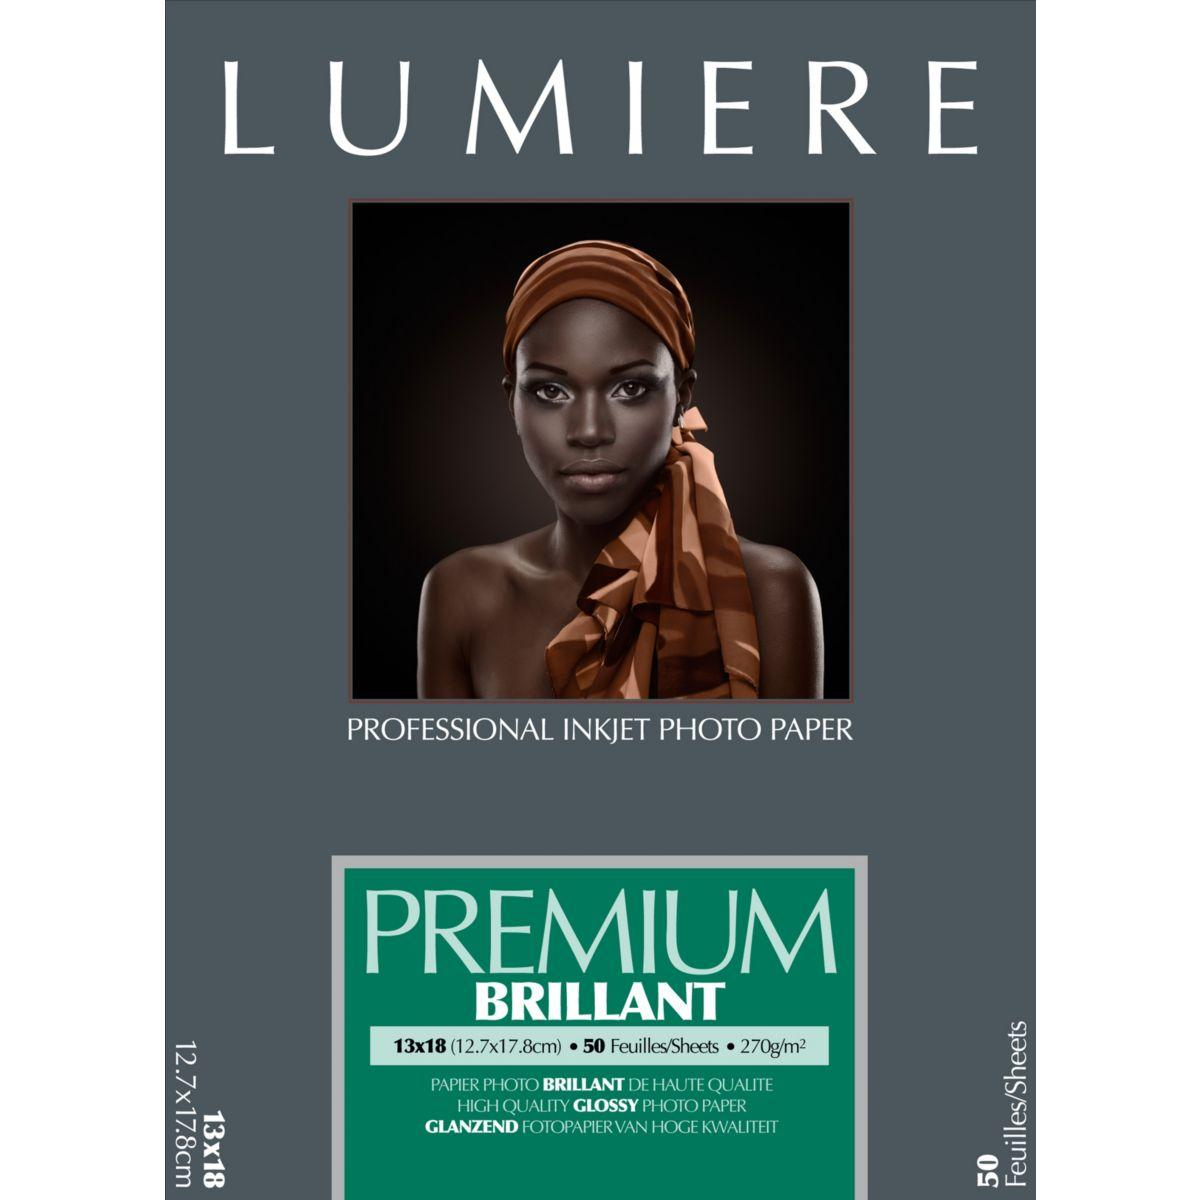 Papier photo lumiere prestige brillant 50f 12,7x17,8 270g - 2% de remise imm�diate avec